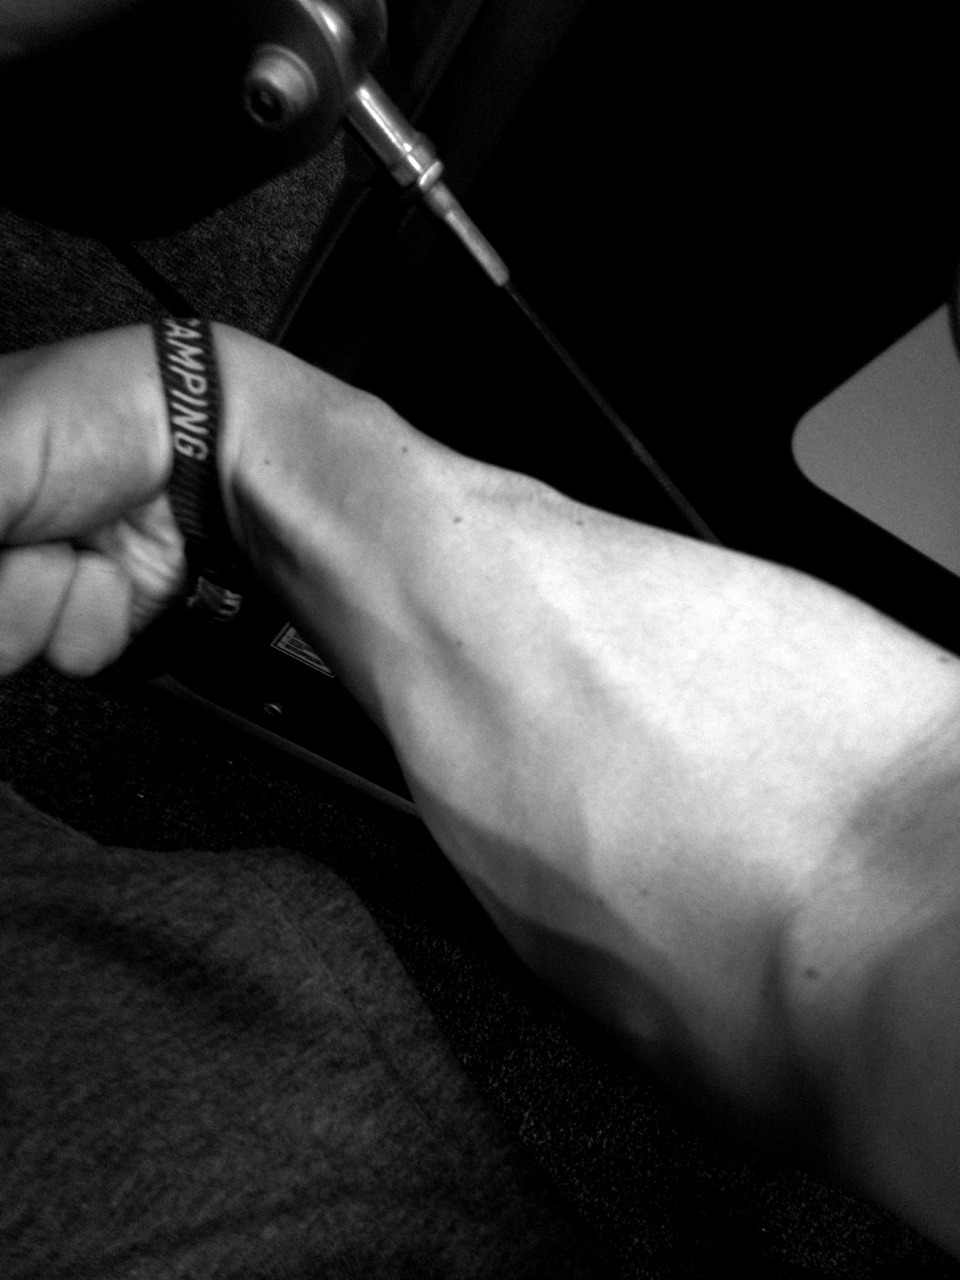 Forearm semi pumped